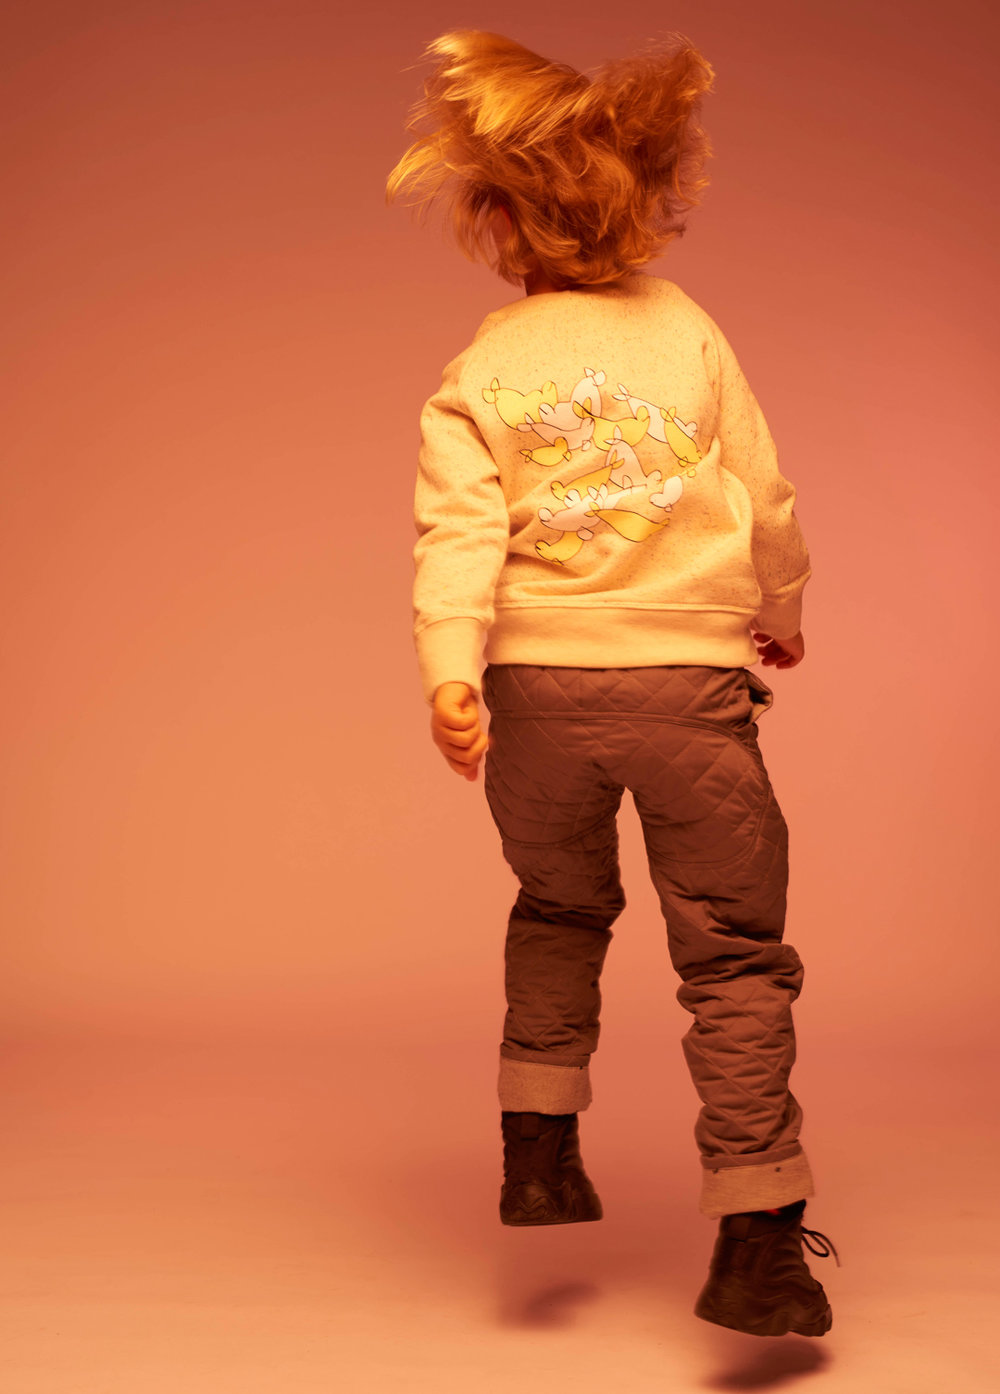 FortKids_AW1811654.jpg